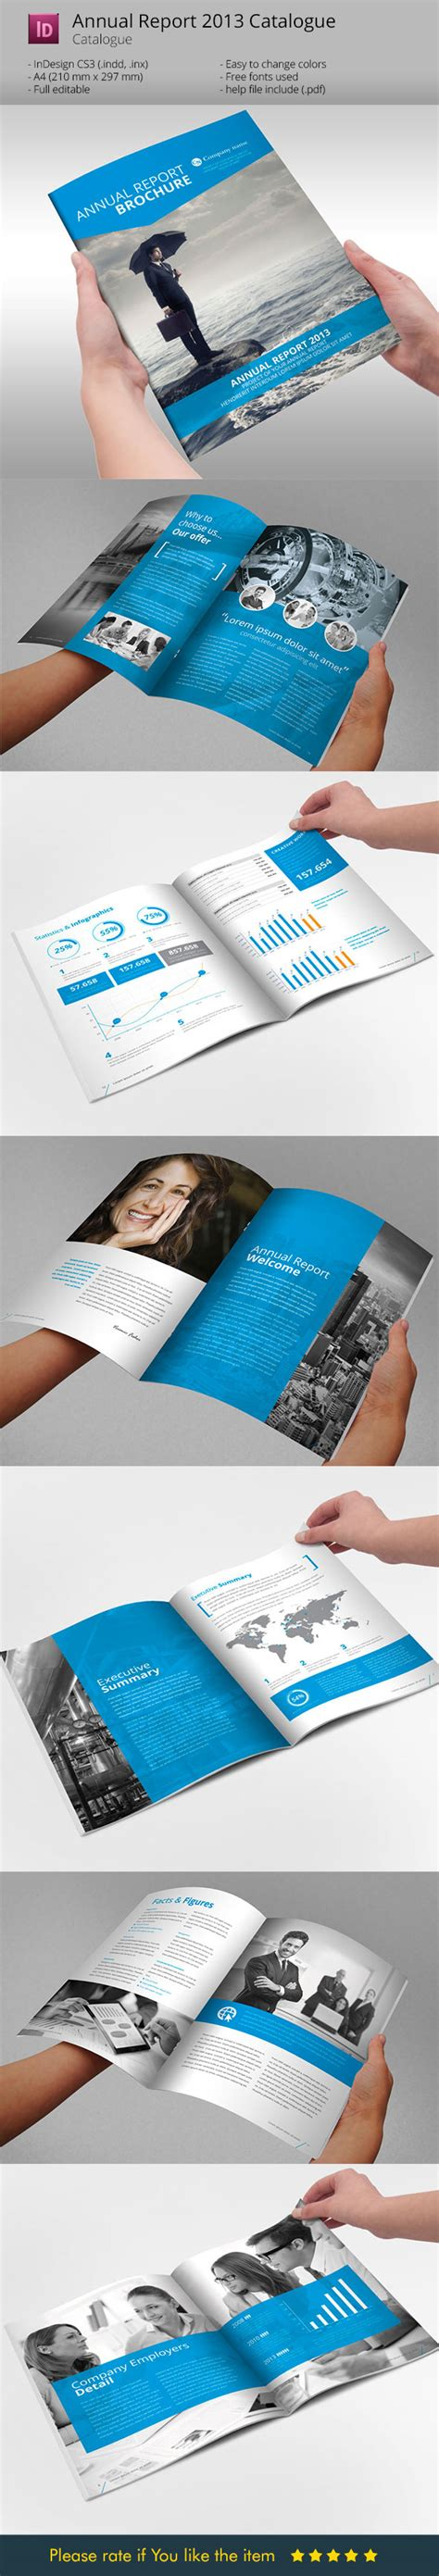 annual report brochure indesign template by braxasmora on